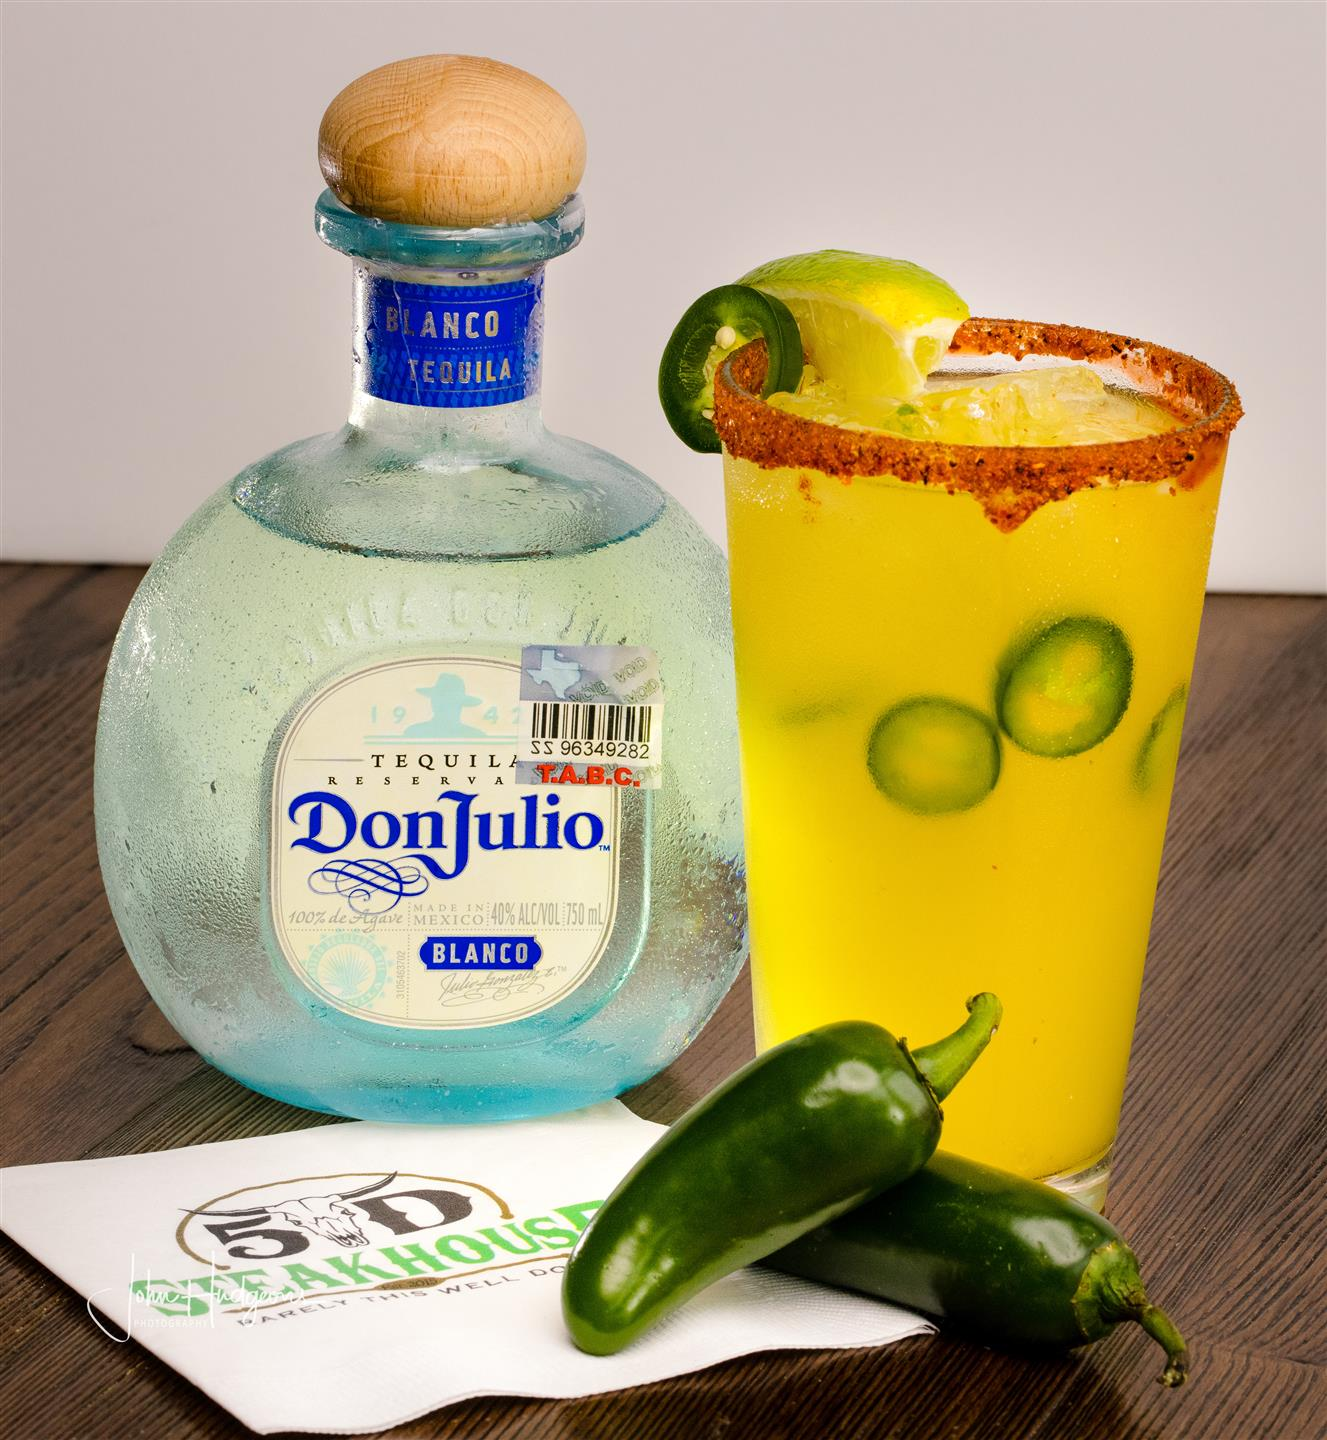 spicy margarita with Don julio